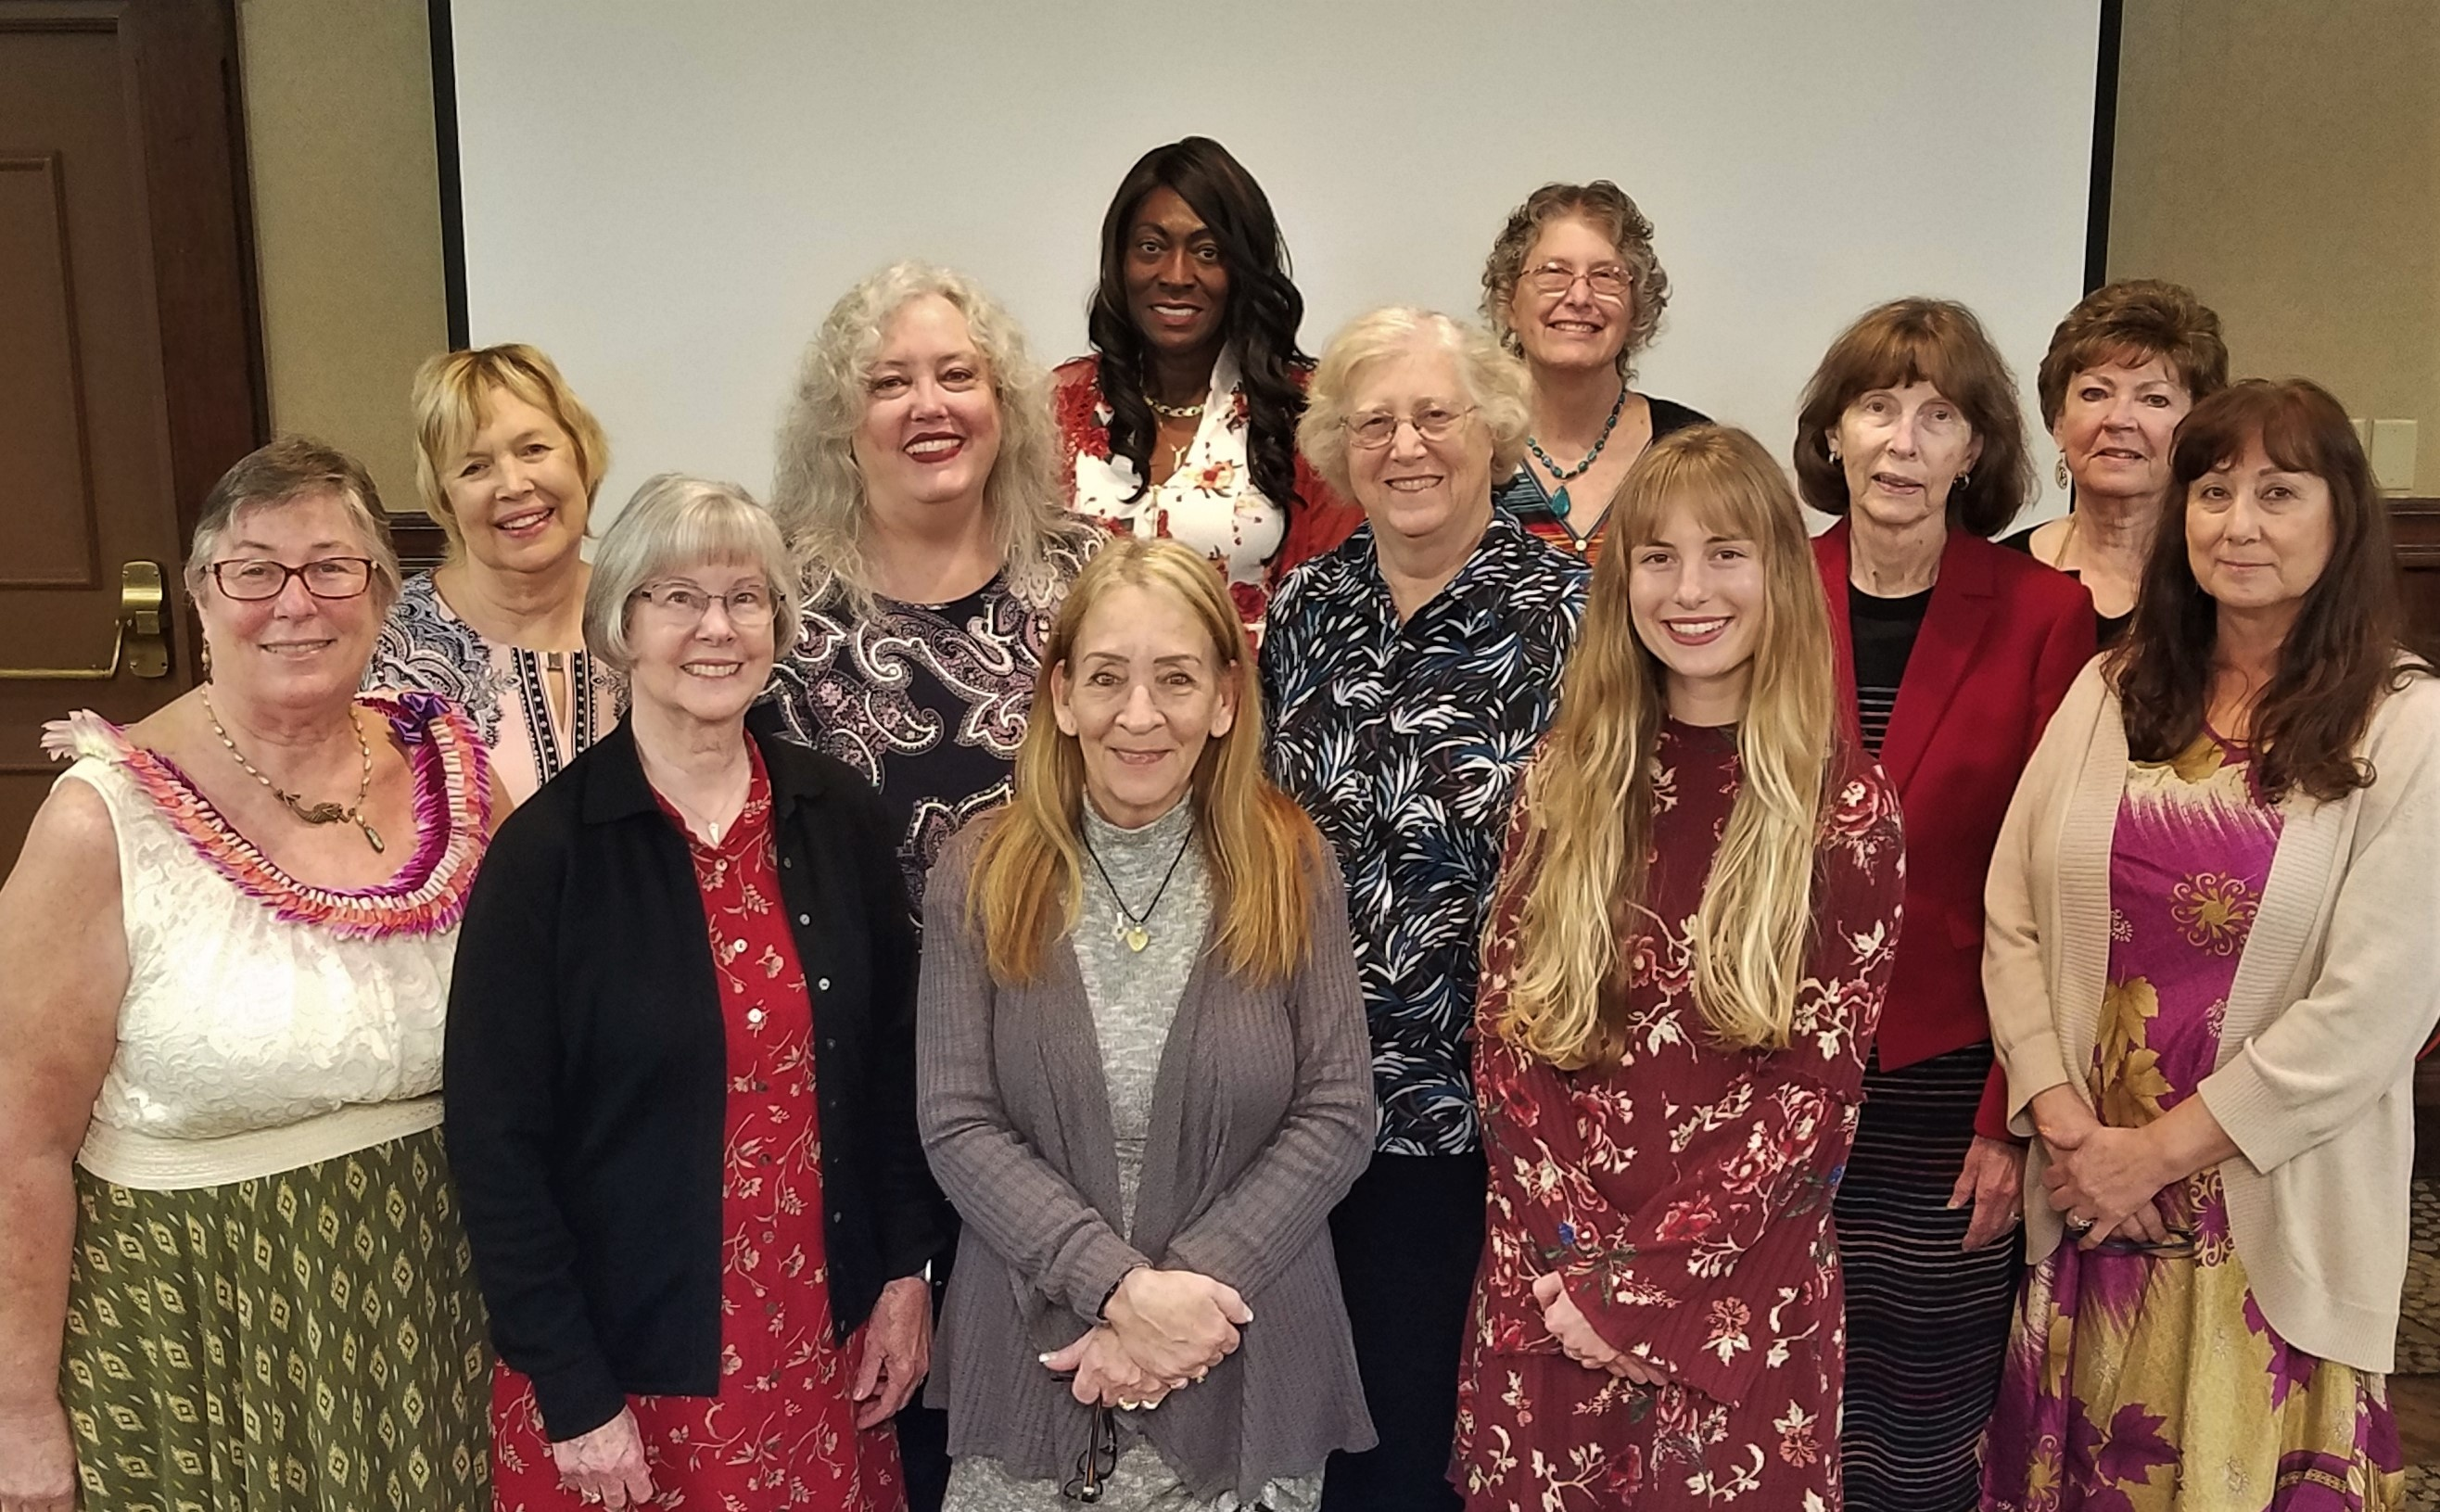 The Southern California women's enrichment weekend provided a structured atmosphere of growth and fellowship with the 126 women present.